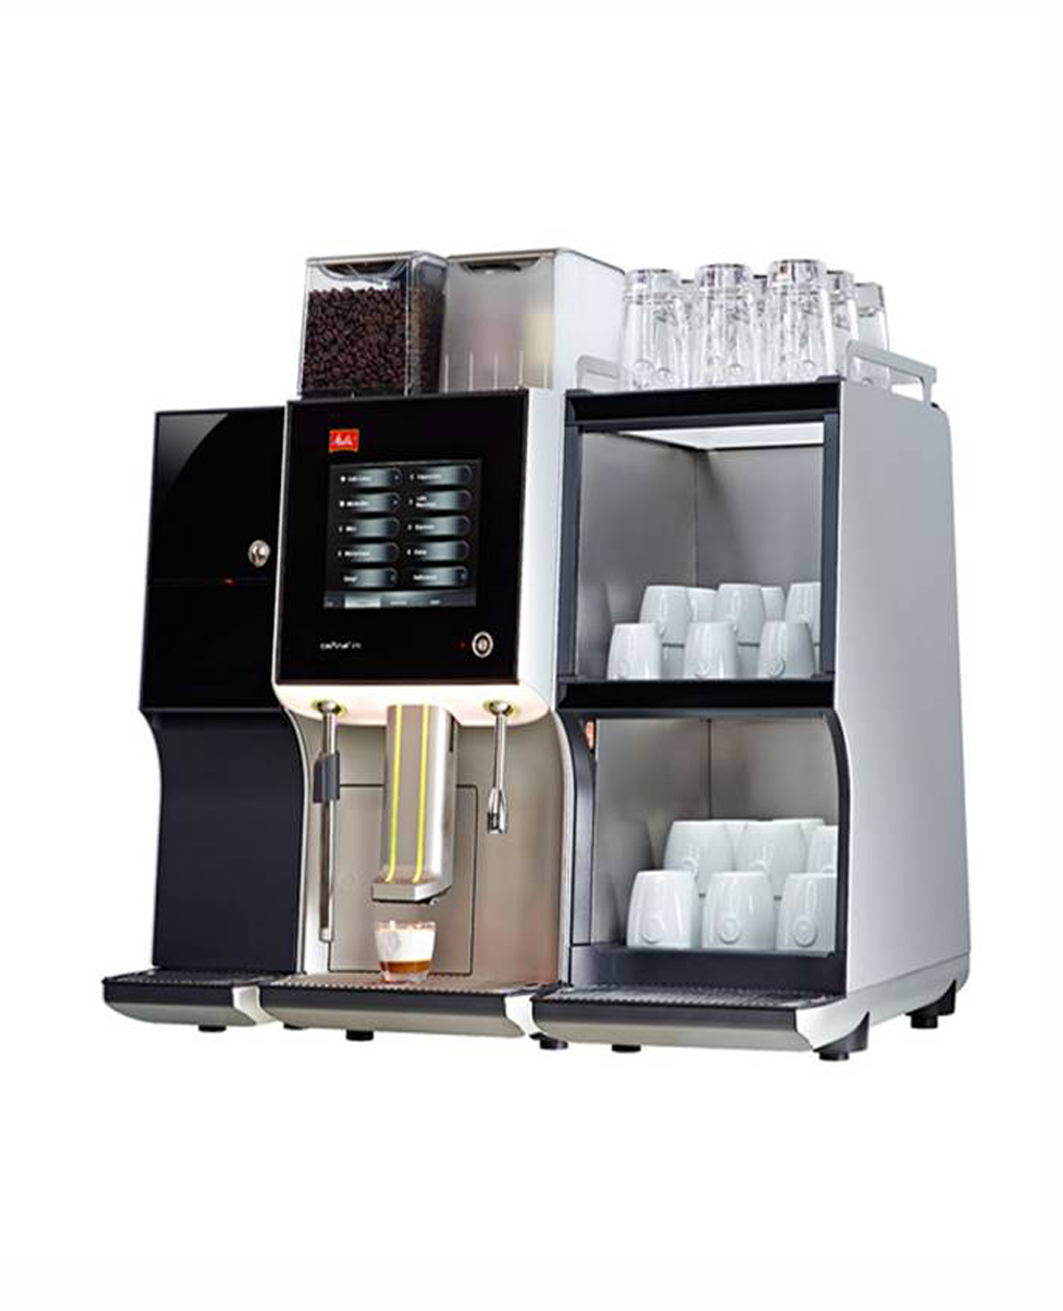 Melitta XT6 coffee machine for large offices